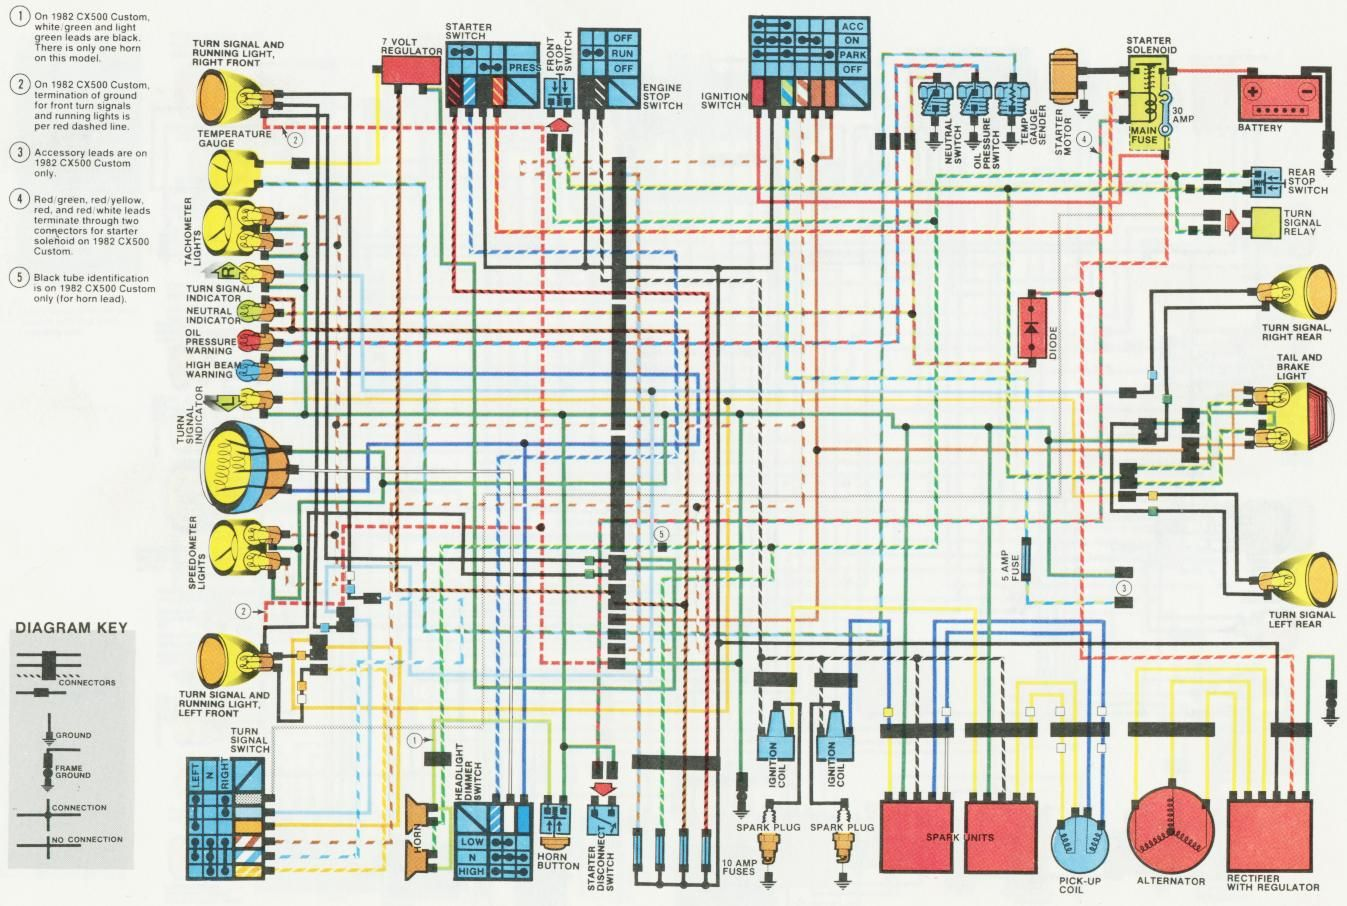 nf_6063] 1978 honda cx500 wiring diagram get free image about wiring  diagram schematic wiring  ifica hila intap nuvit xolia inama mohammedshrine librar wiring 101